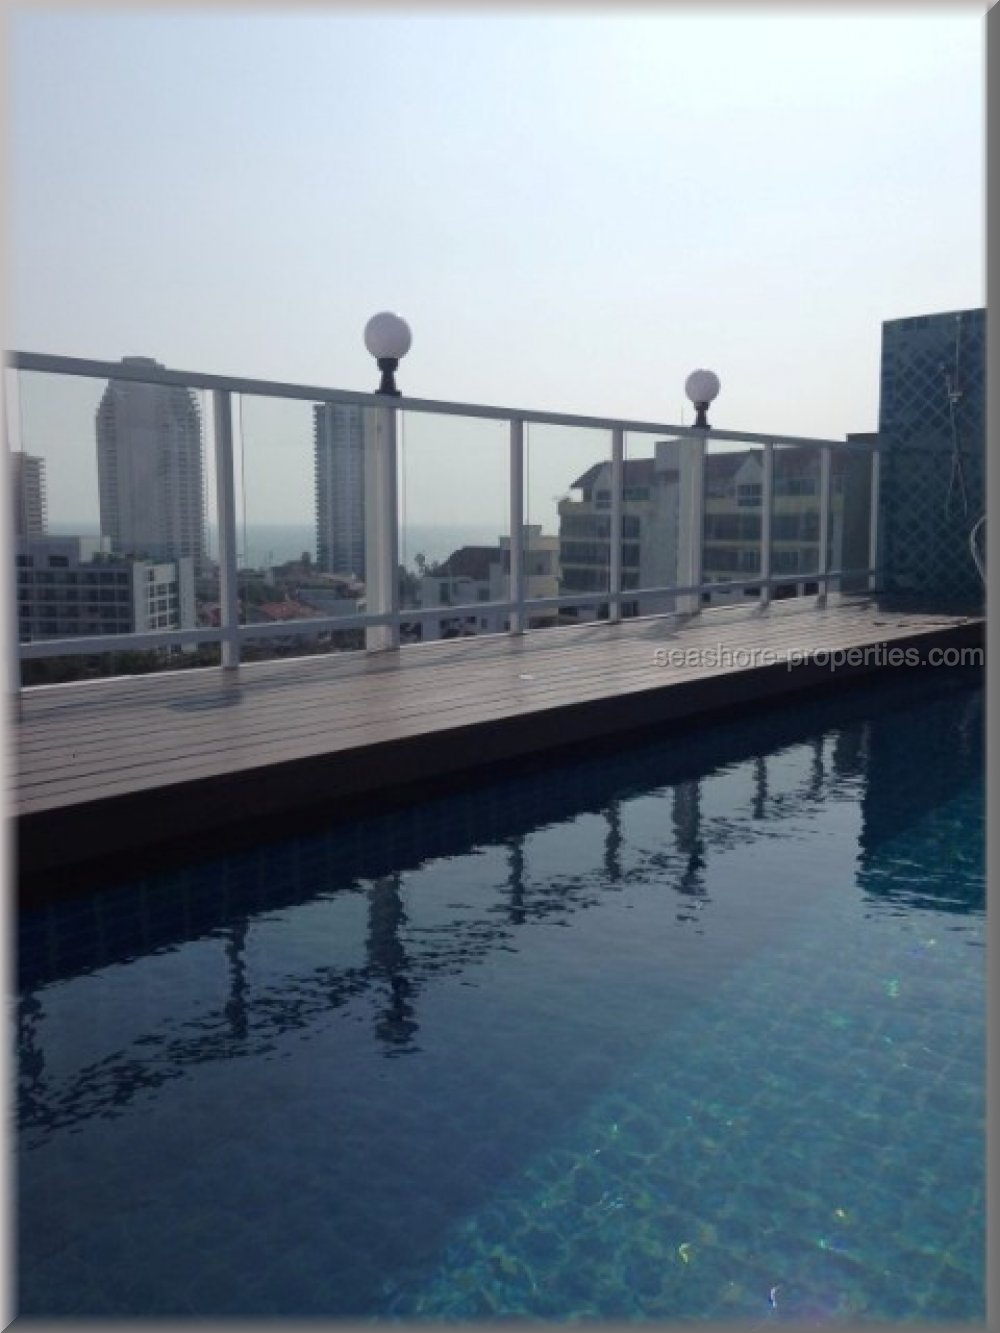 siam oriental  Condominiums for sale in Pratumnak Pattaya